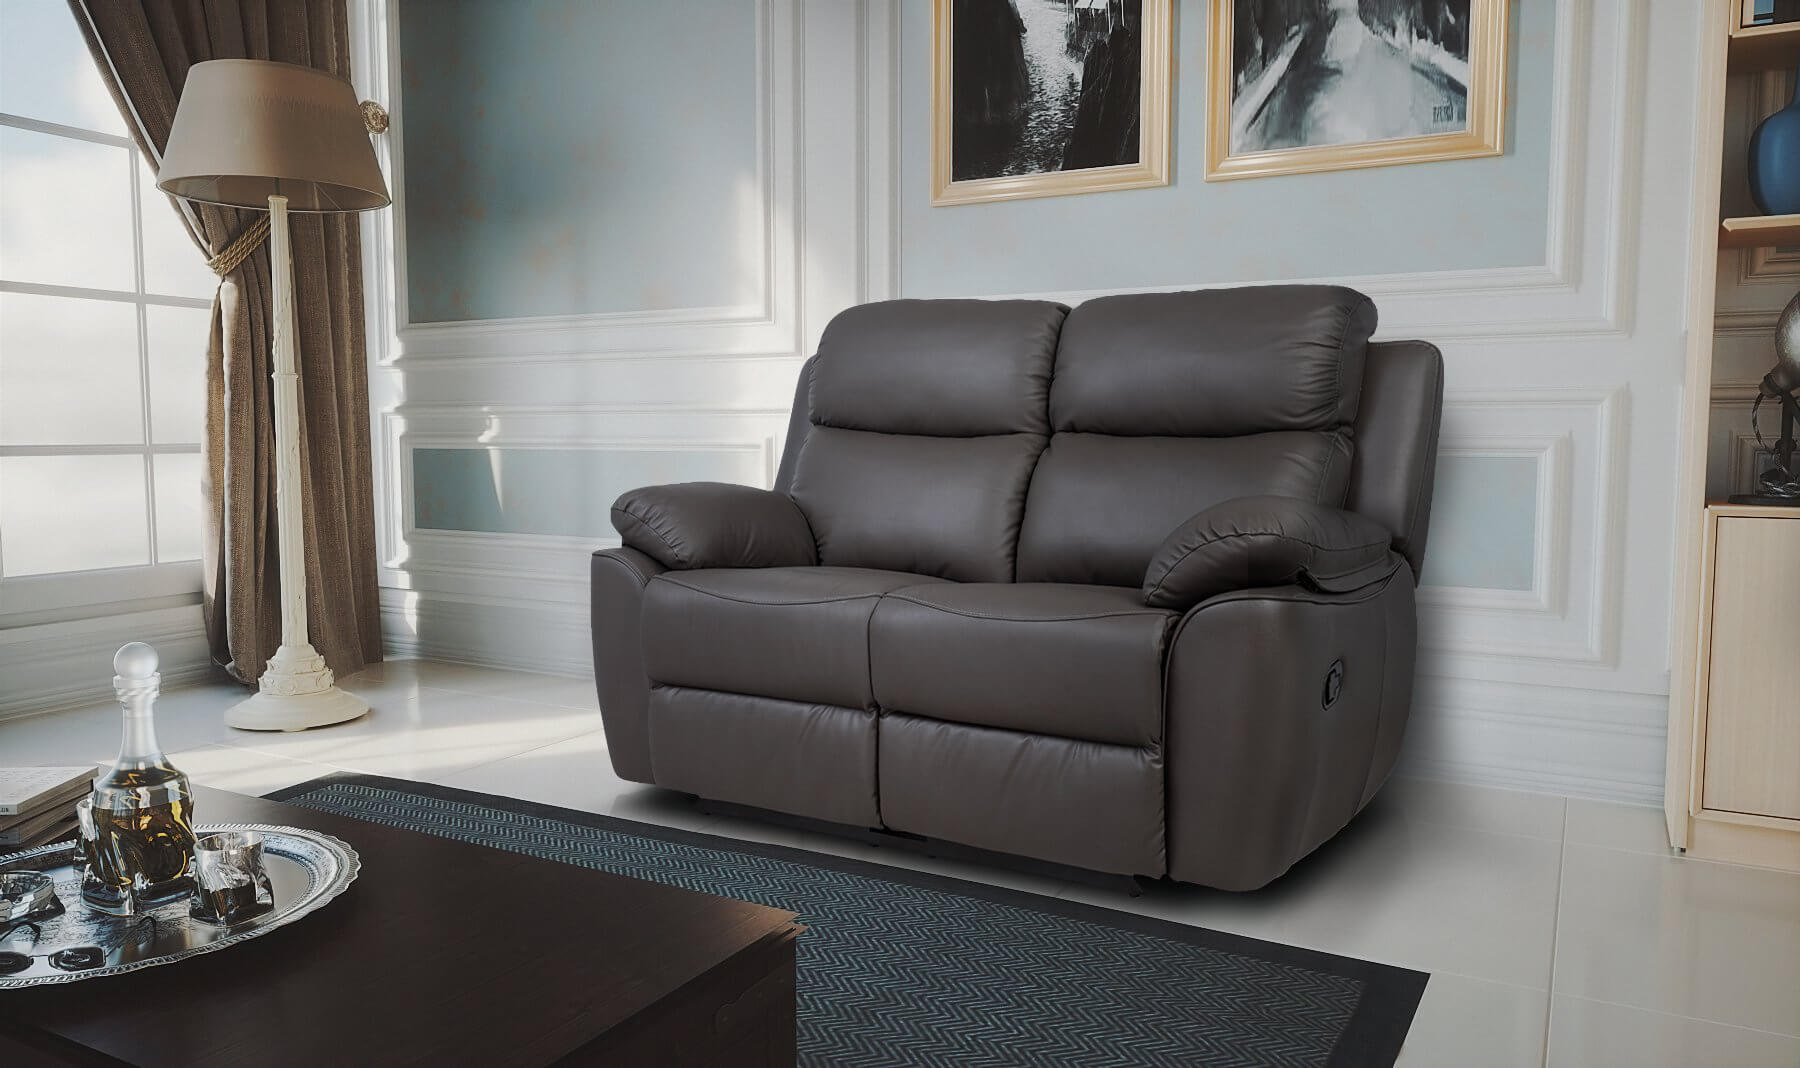 Luxury Electric Valencia 3 2 Top Grain Leather Recliner